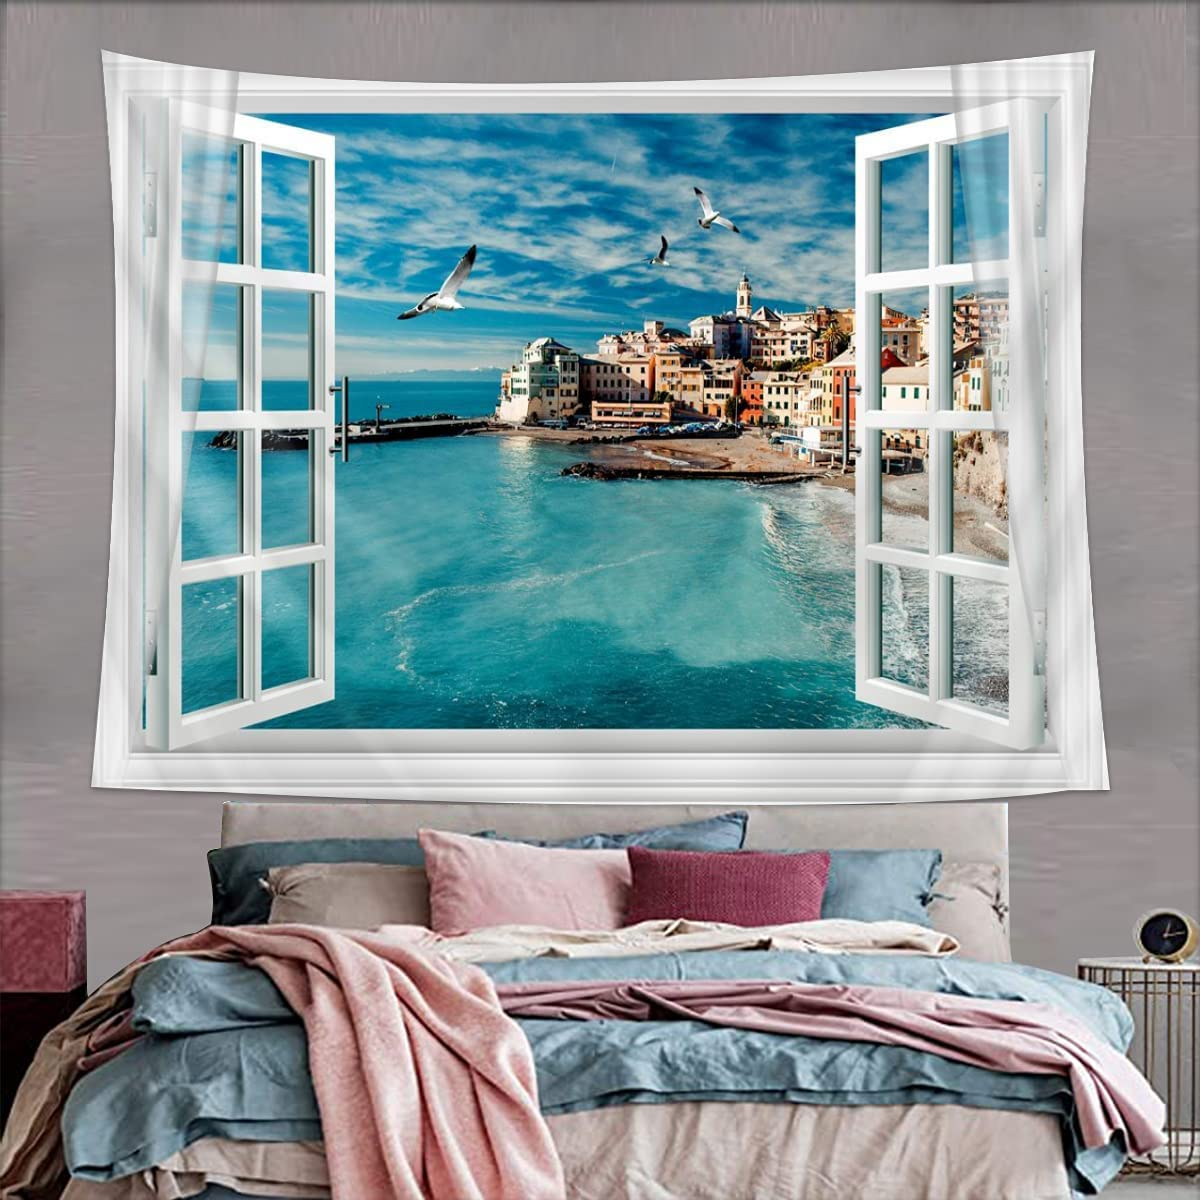 Window Tapestry Wall Hanging Ocean Bedroom Wall Decor,Beach Scene Tapestry Wall Hanging Home Decor For Bedroom, Dorm, College, Living Room, 51x60 Inches , Blue Nature Wall Tapestry 51x59 Inches